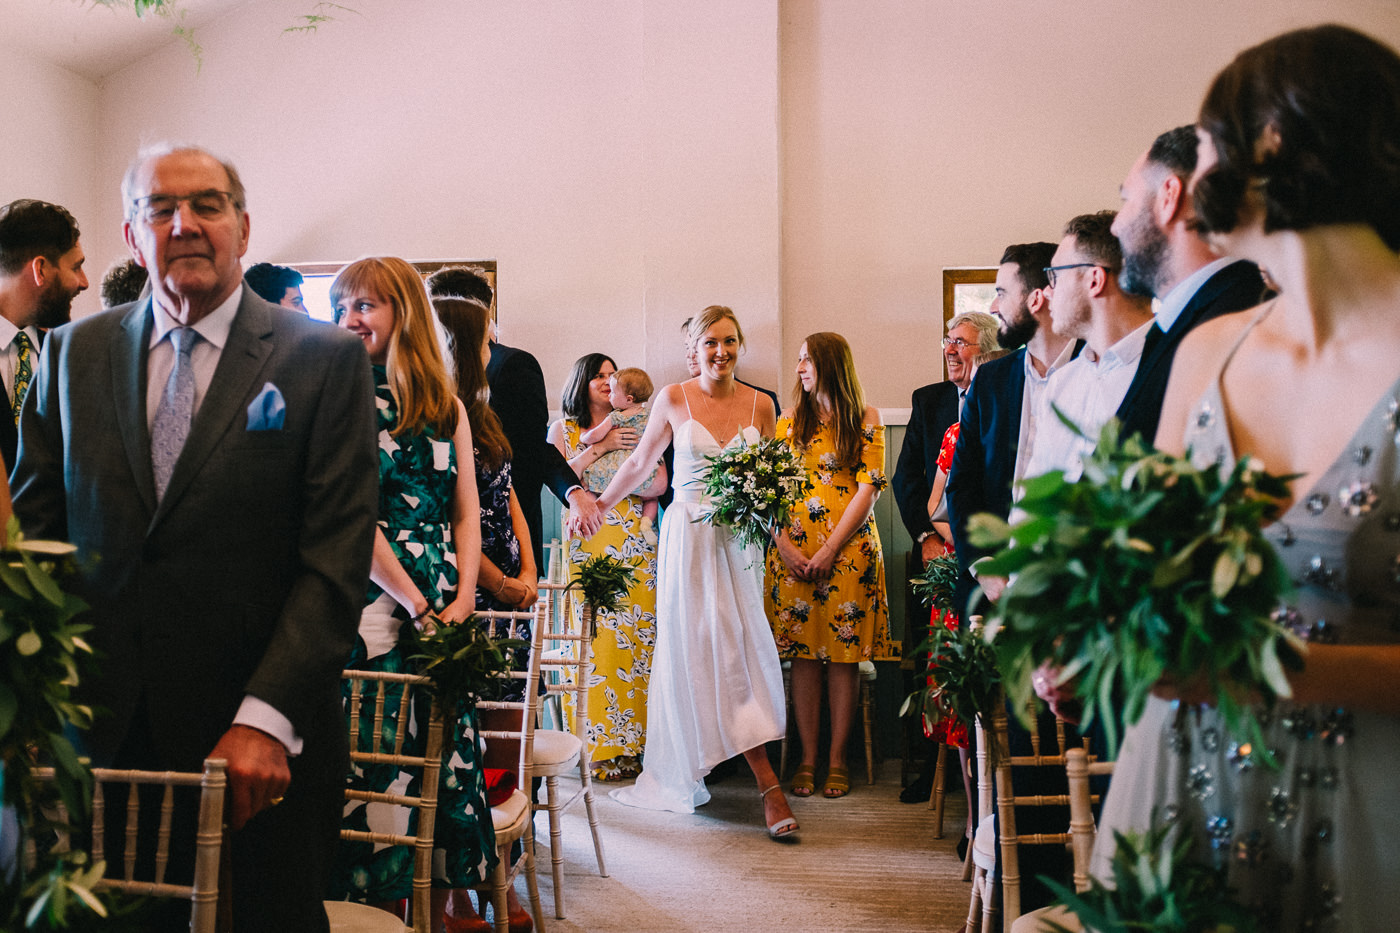 COWBRIDGE GLYNDWR VINEYARD WEDDING PHOTOGRAPHY CARDIFF SOUTH WALES 022